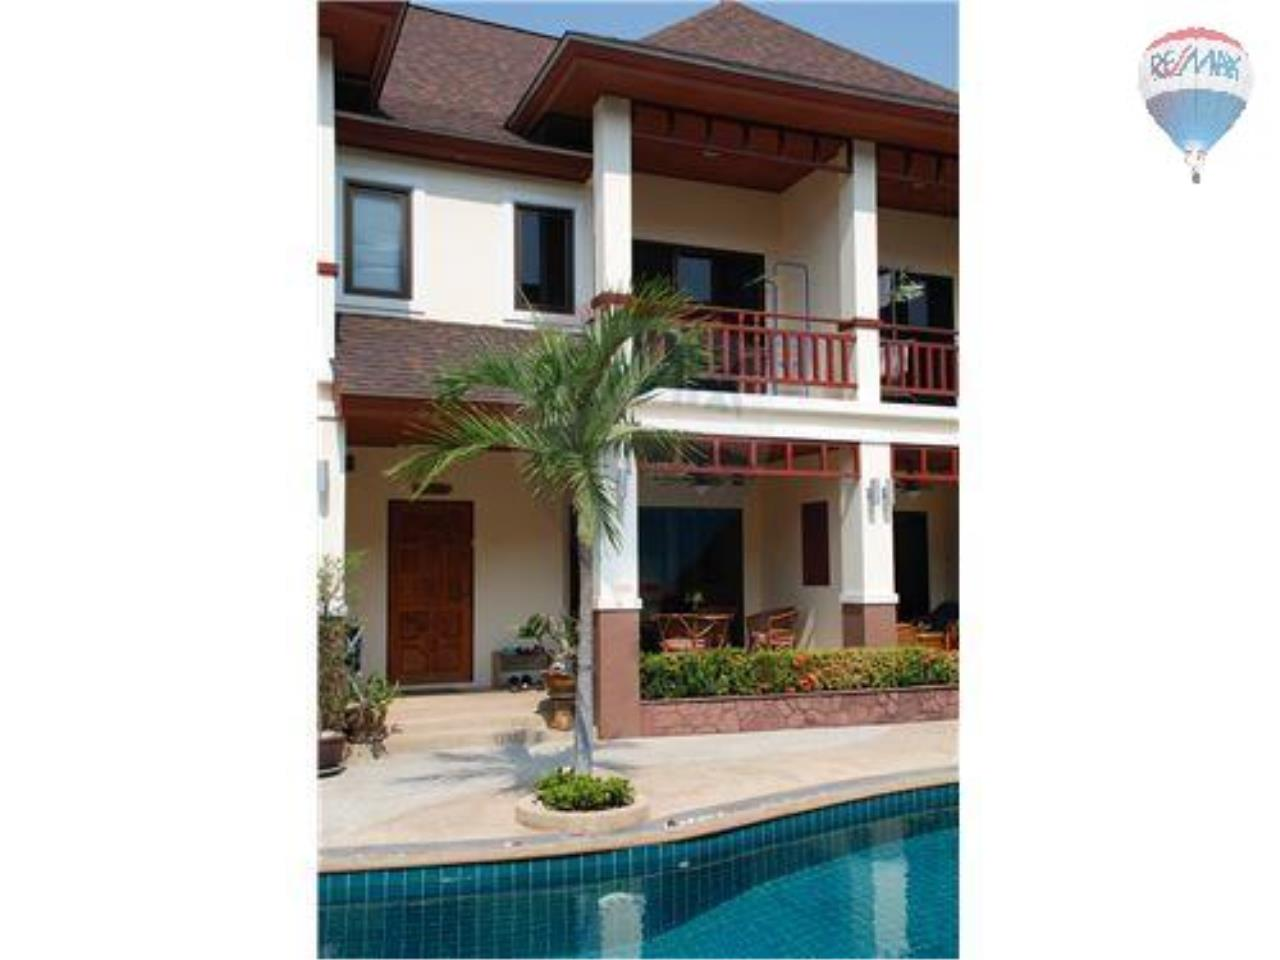 RE/MAX Beach Town Agency's Townhouse in Thai Paradise South, Cha-Am 3